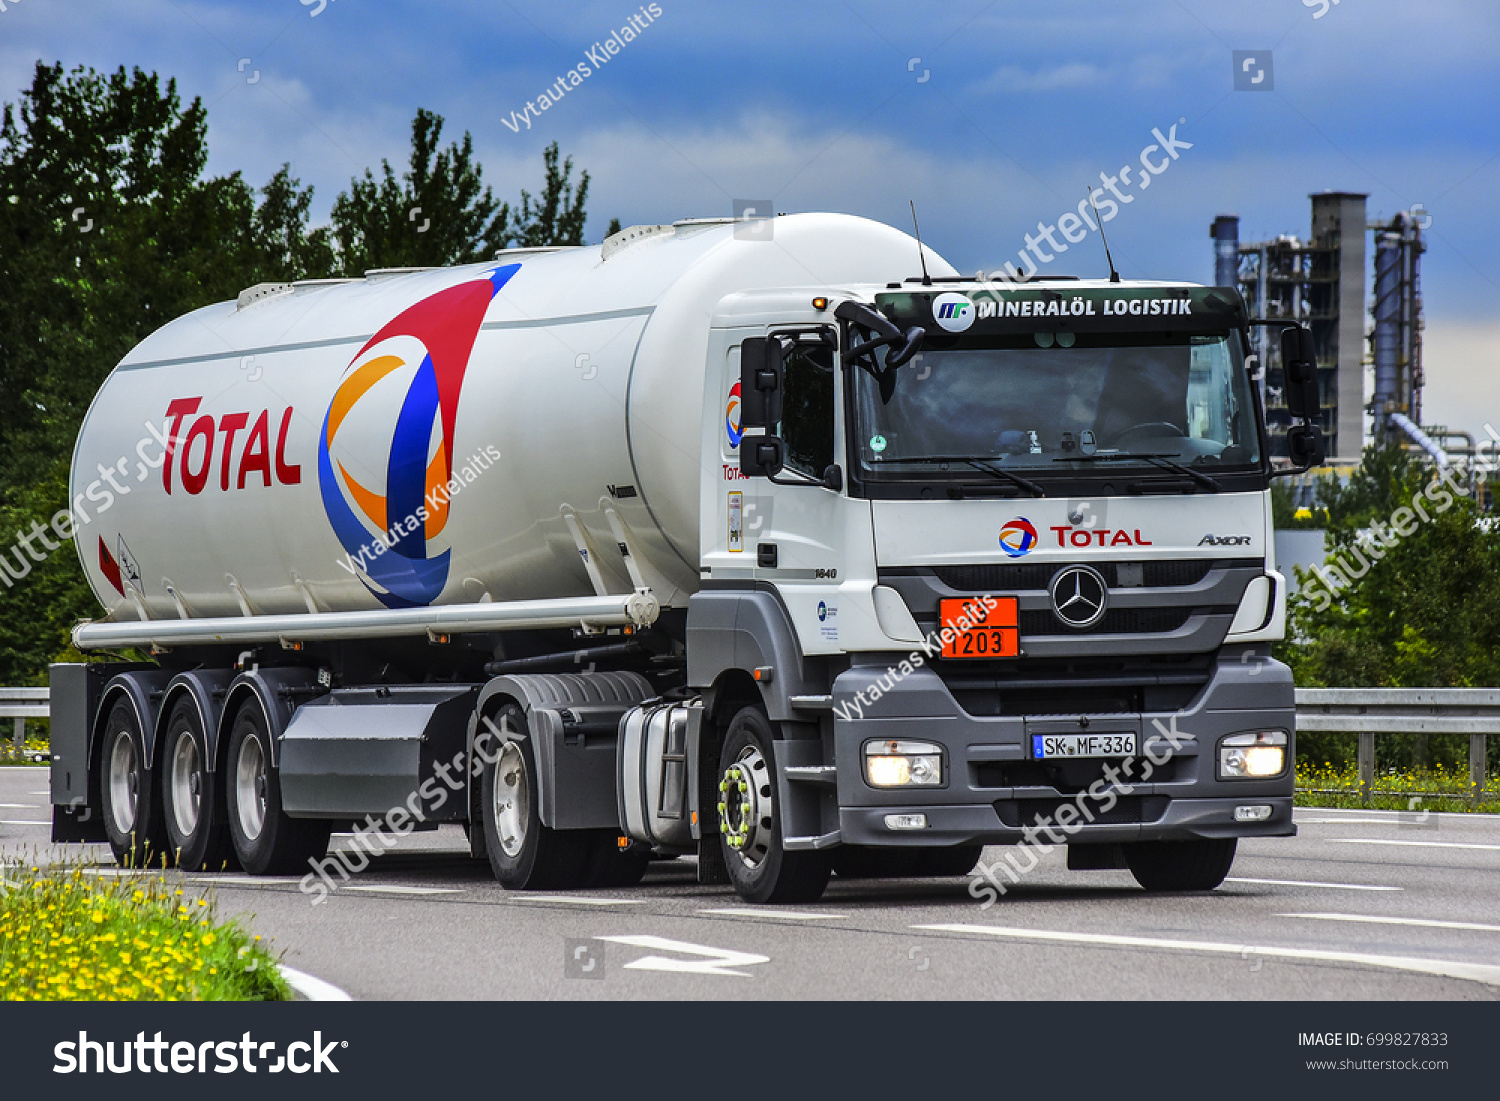 Luxembourg aug 11 total truck on august 11 2017 in luxembourg total